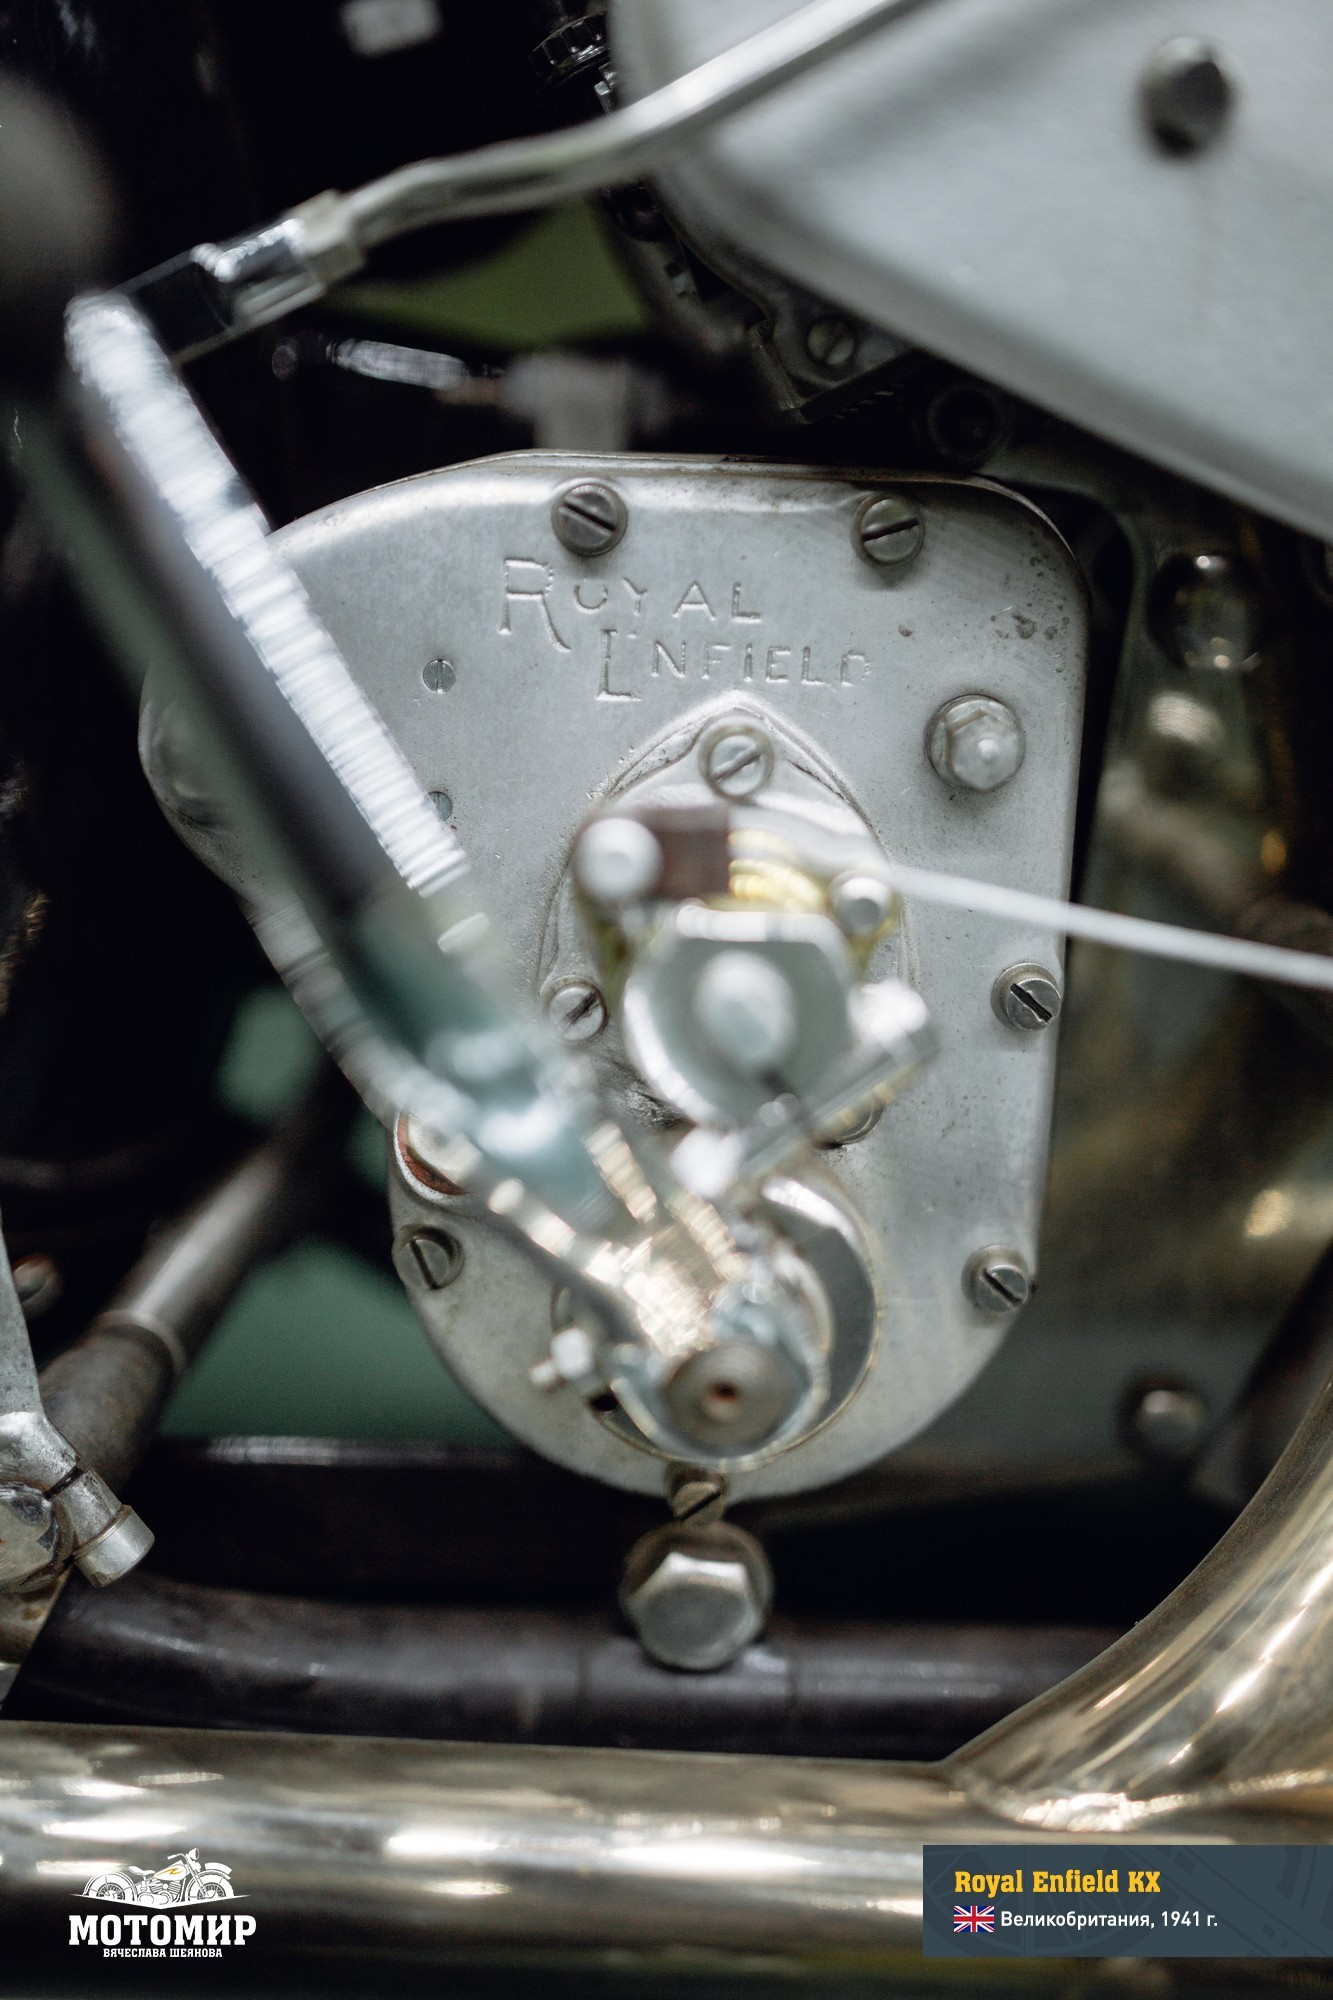 royal-enfield-kx-201601-web-38